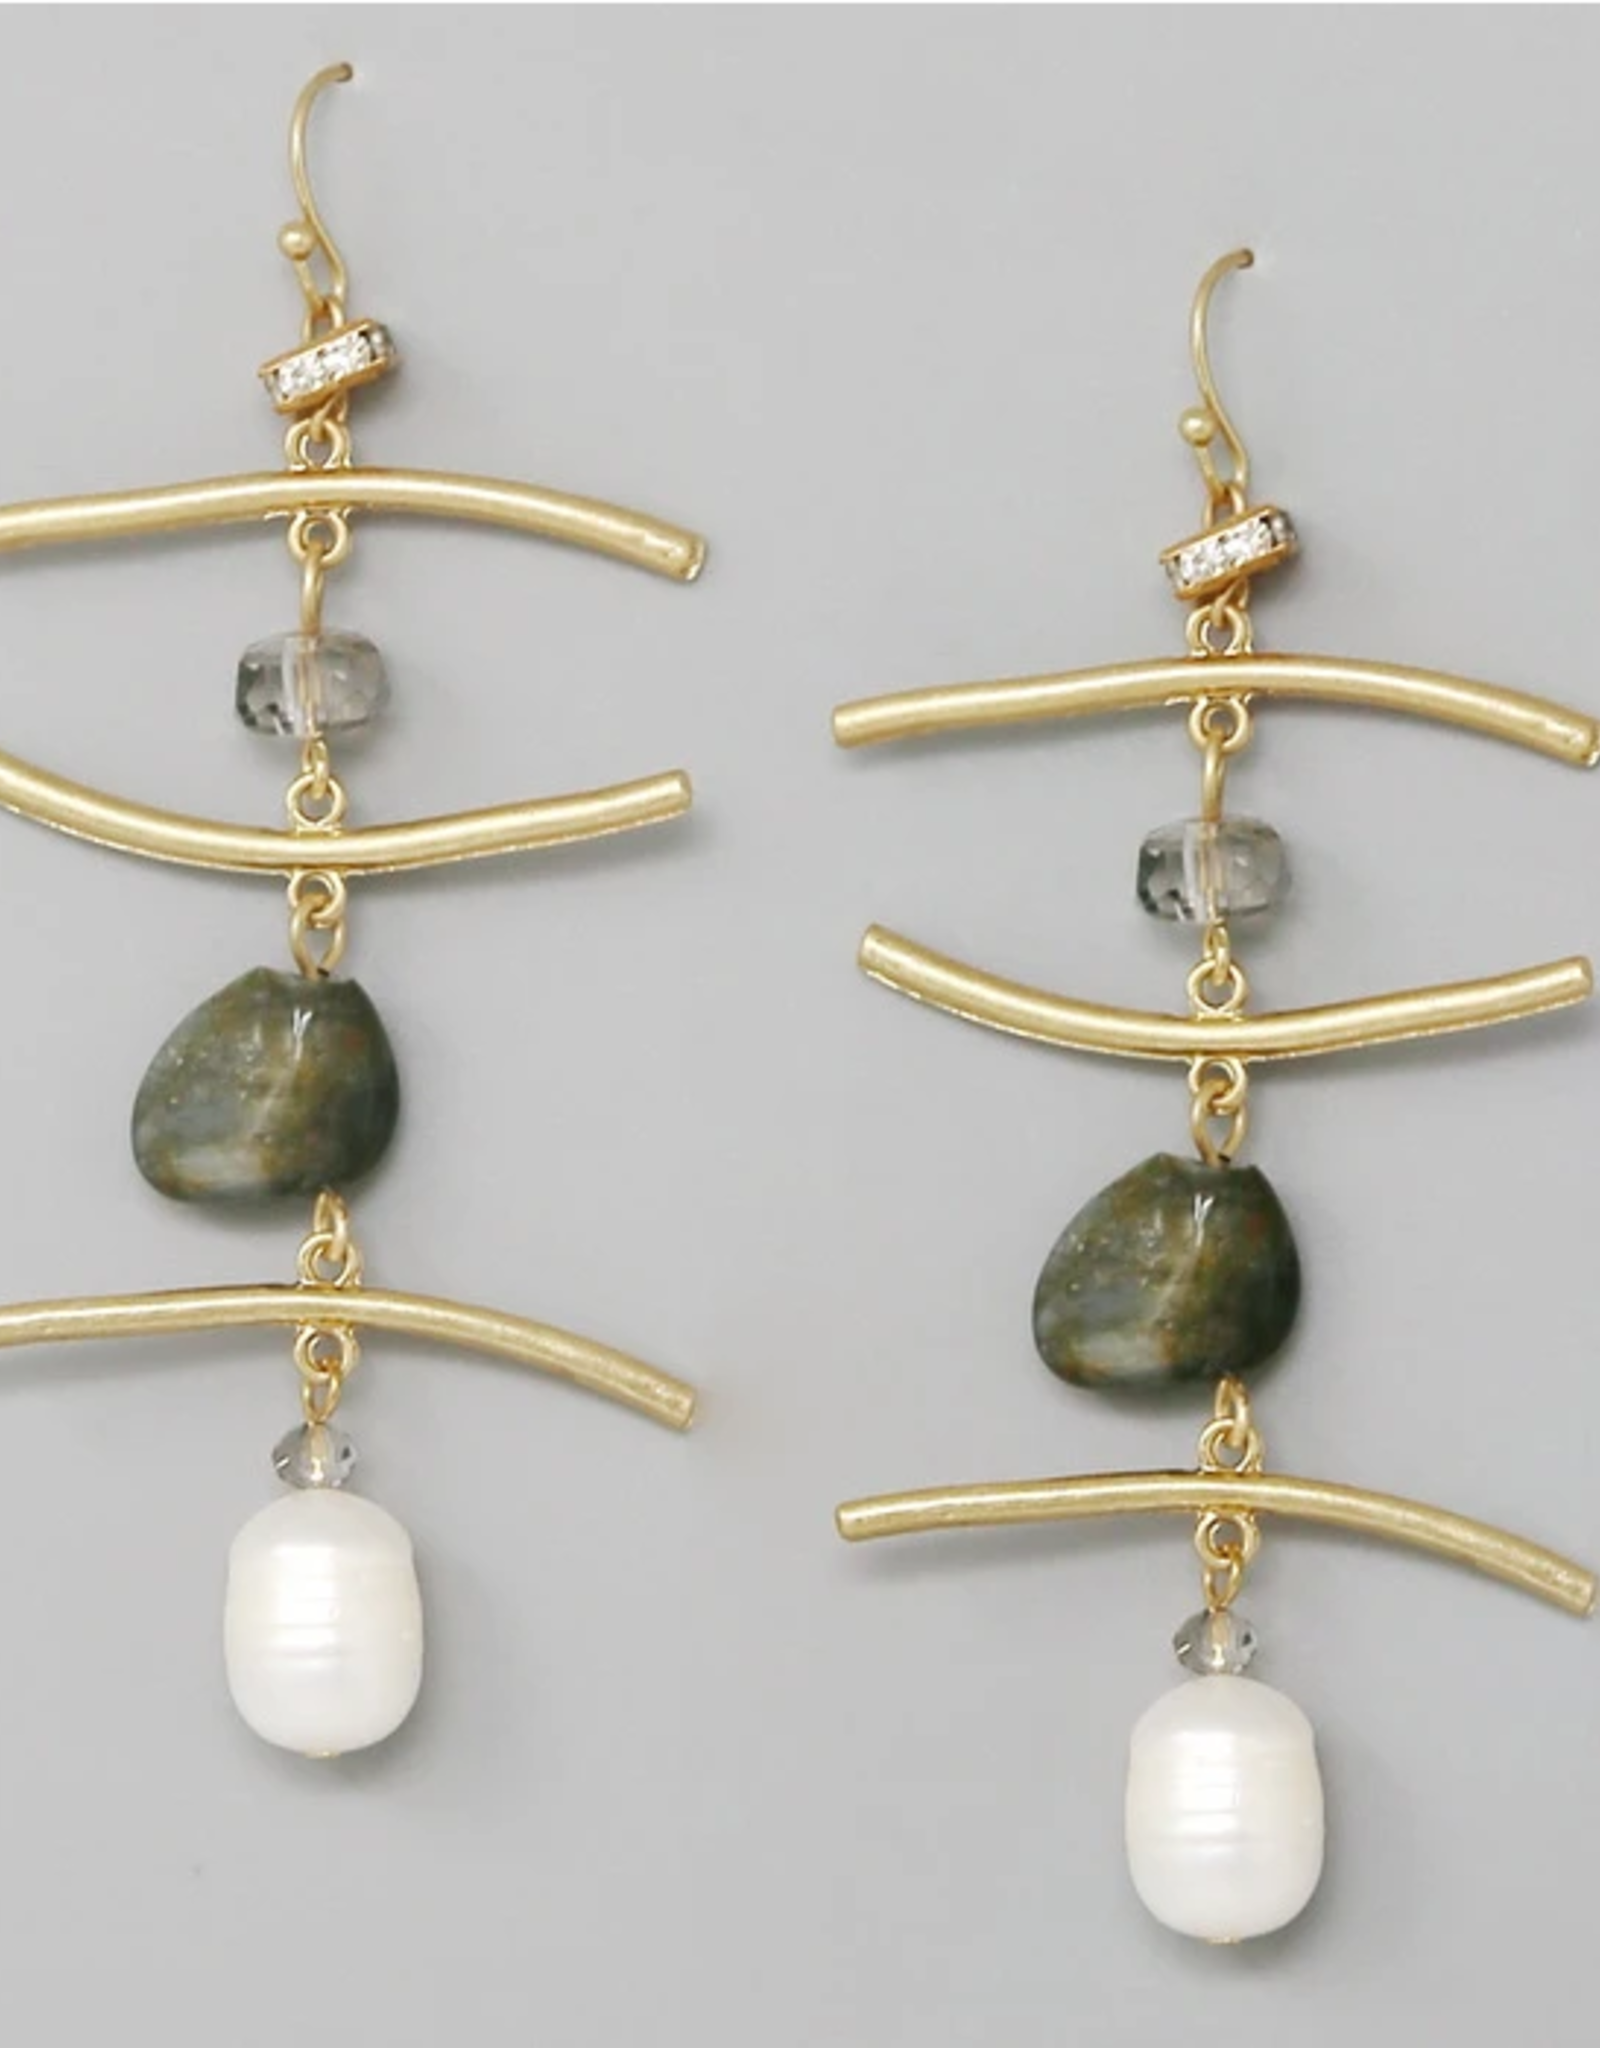 Blue Suede Jewels Metal Bar With Natural Stone And Pearl Drop Earrings